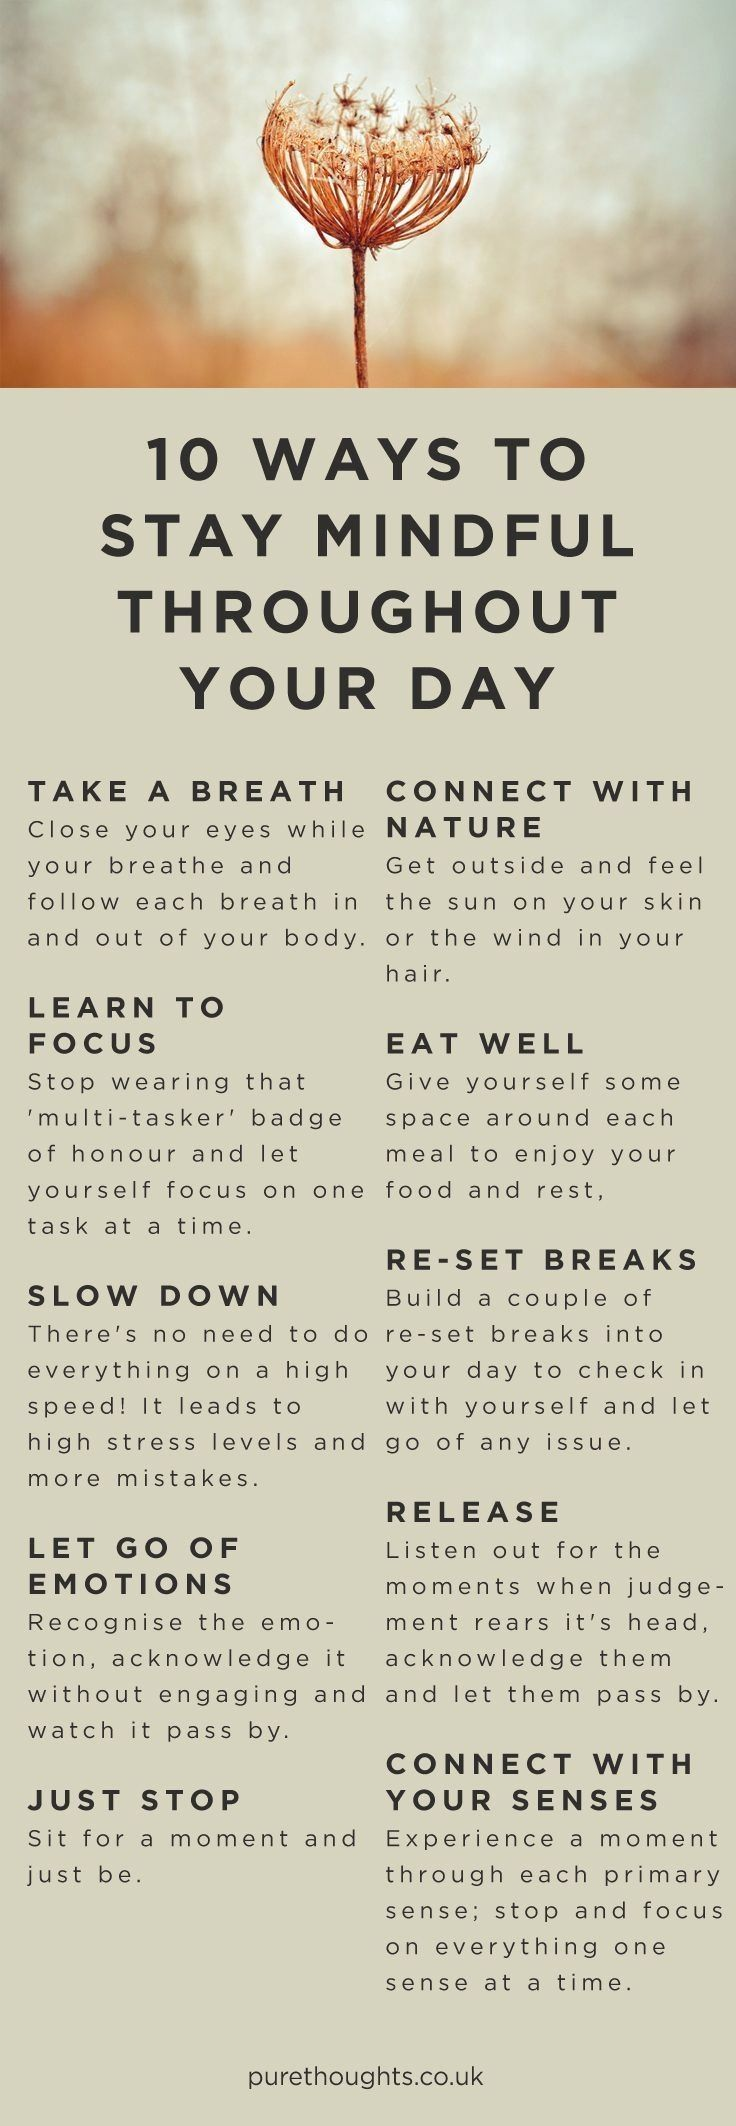 Mindfulness meditation stress reduction hacks! This